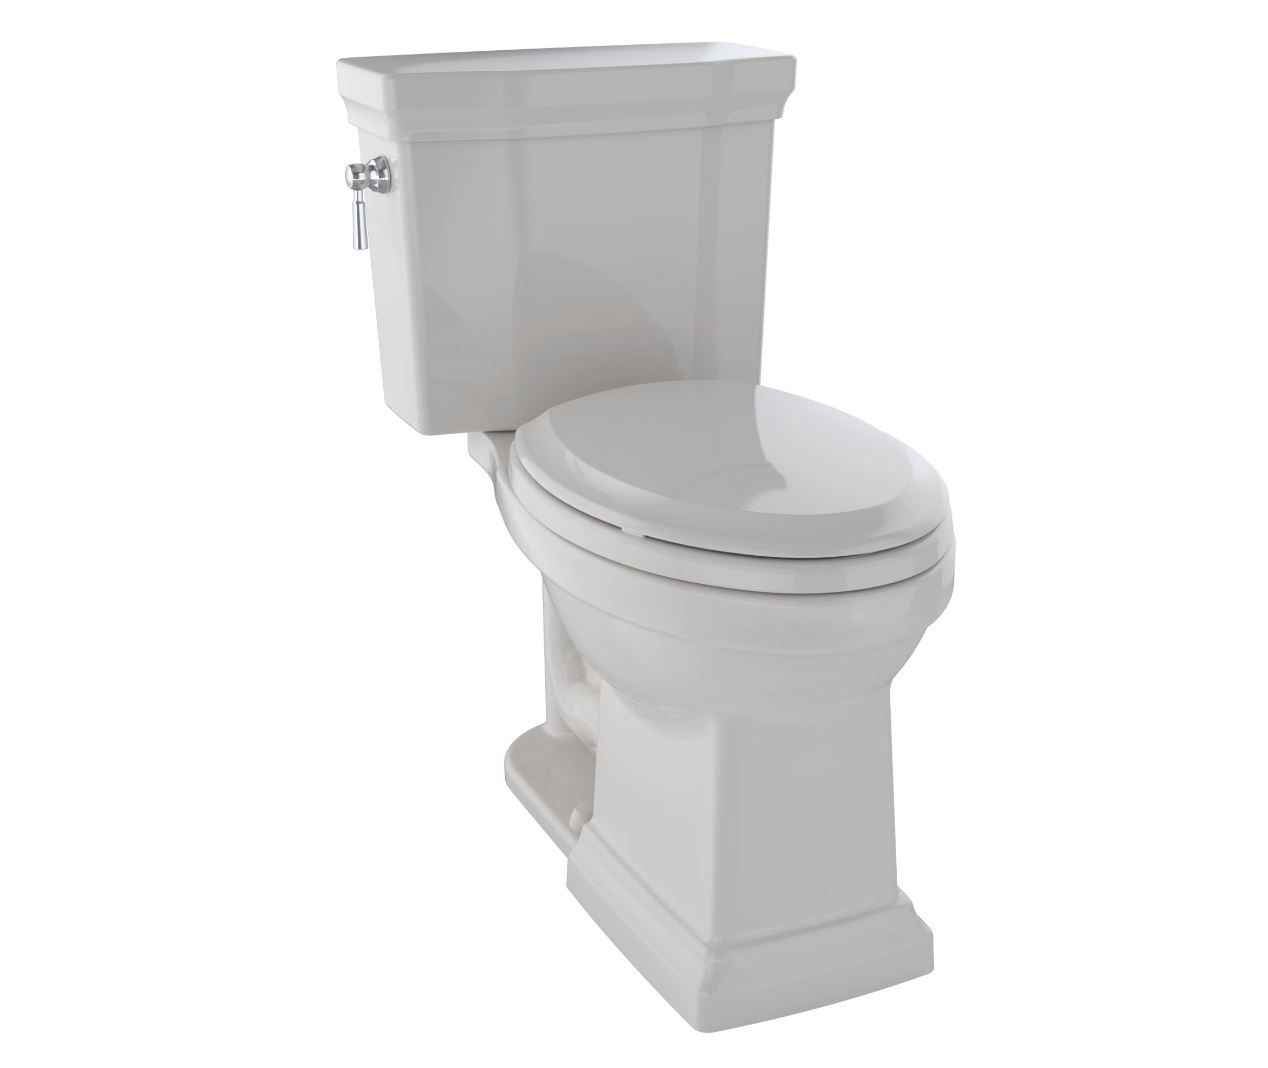 Toto CST404CUFG#12 Promenade II 1G Two-Piece Toilet - 1.0 GPF - Sedona Beige